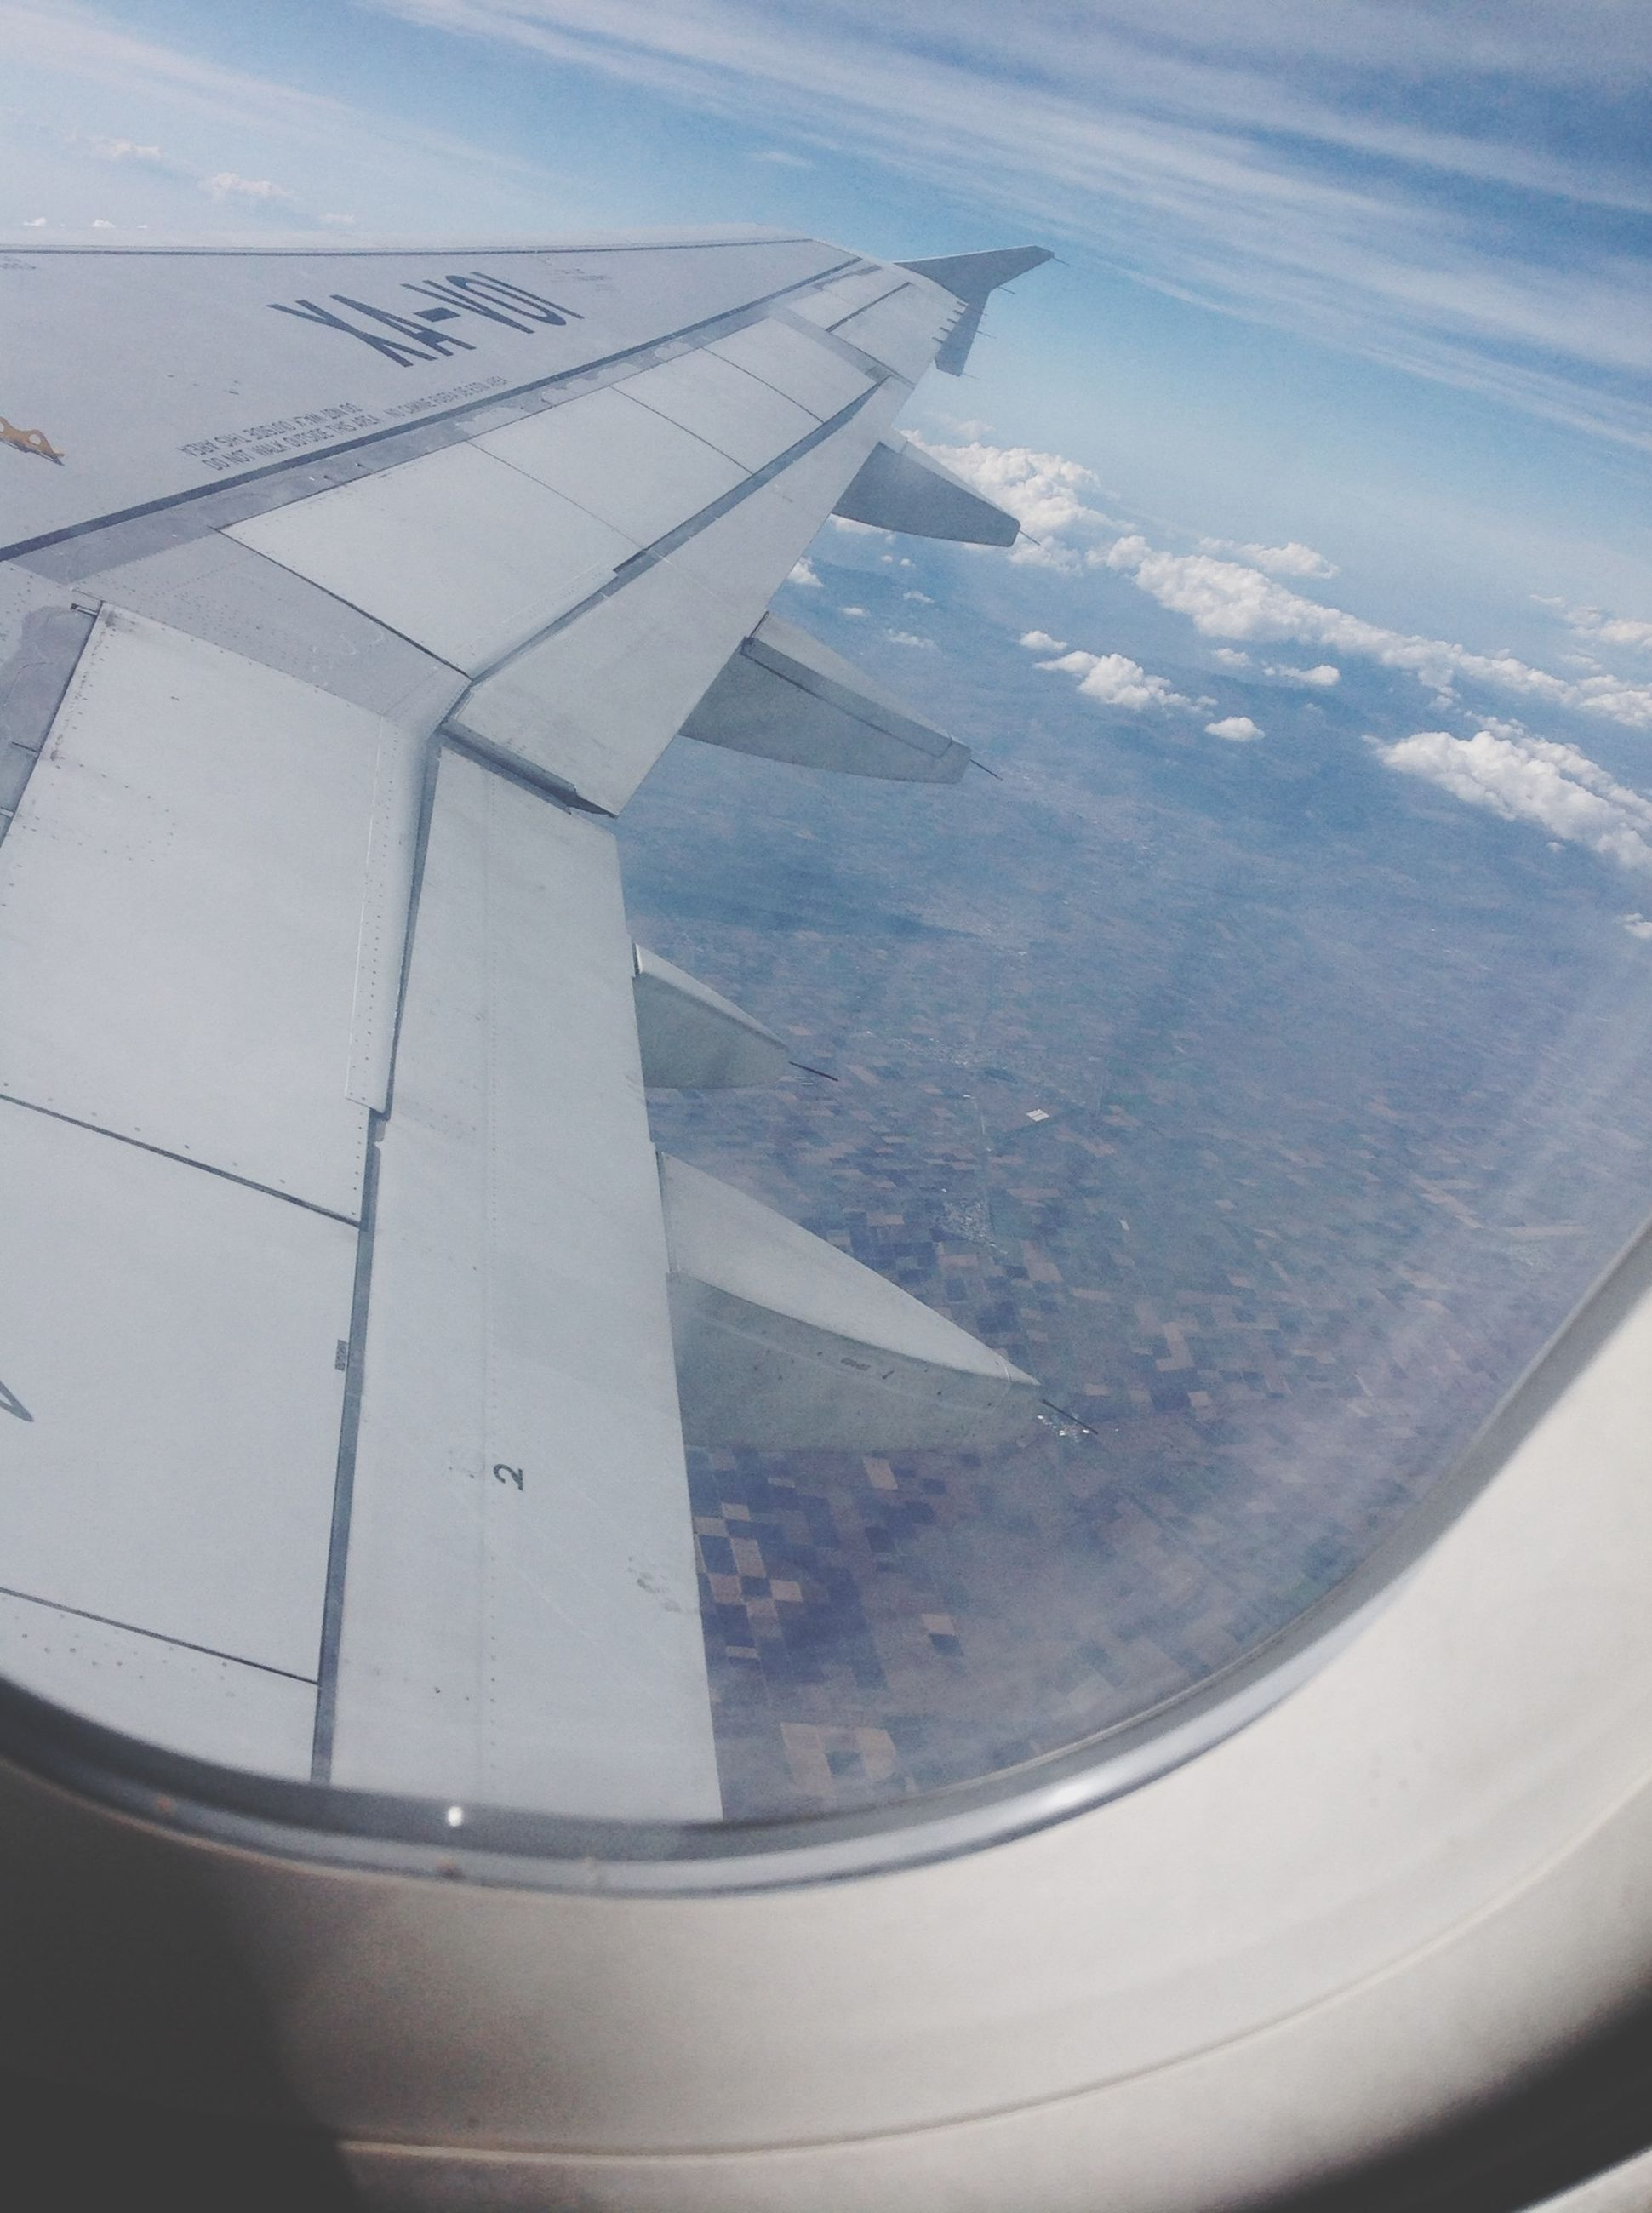 airplane, air vehicle, aircraft wing, transportation, mode of transport, flying, aerial view, part of, cropped, travel, mid-air, journey, public transportation, on the move, sky, landscape, aeroplane, airplane wing, vehicle part, aircraft